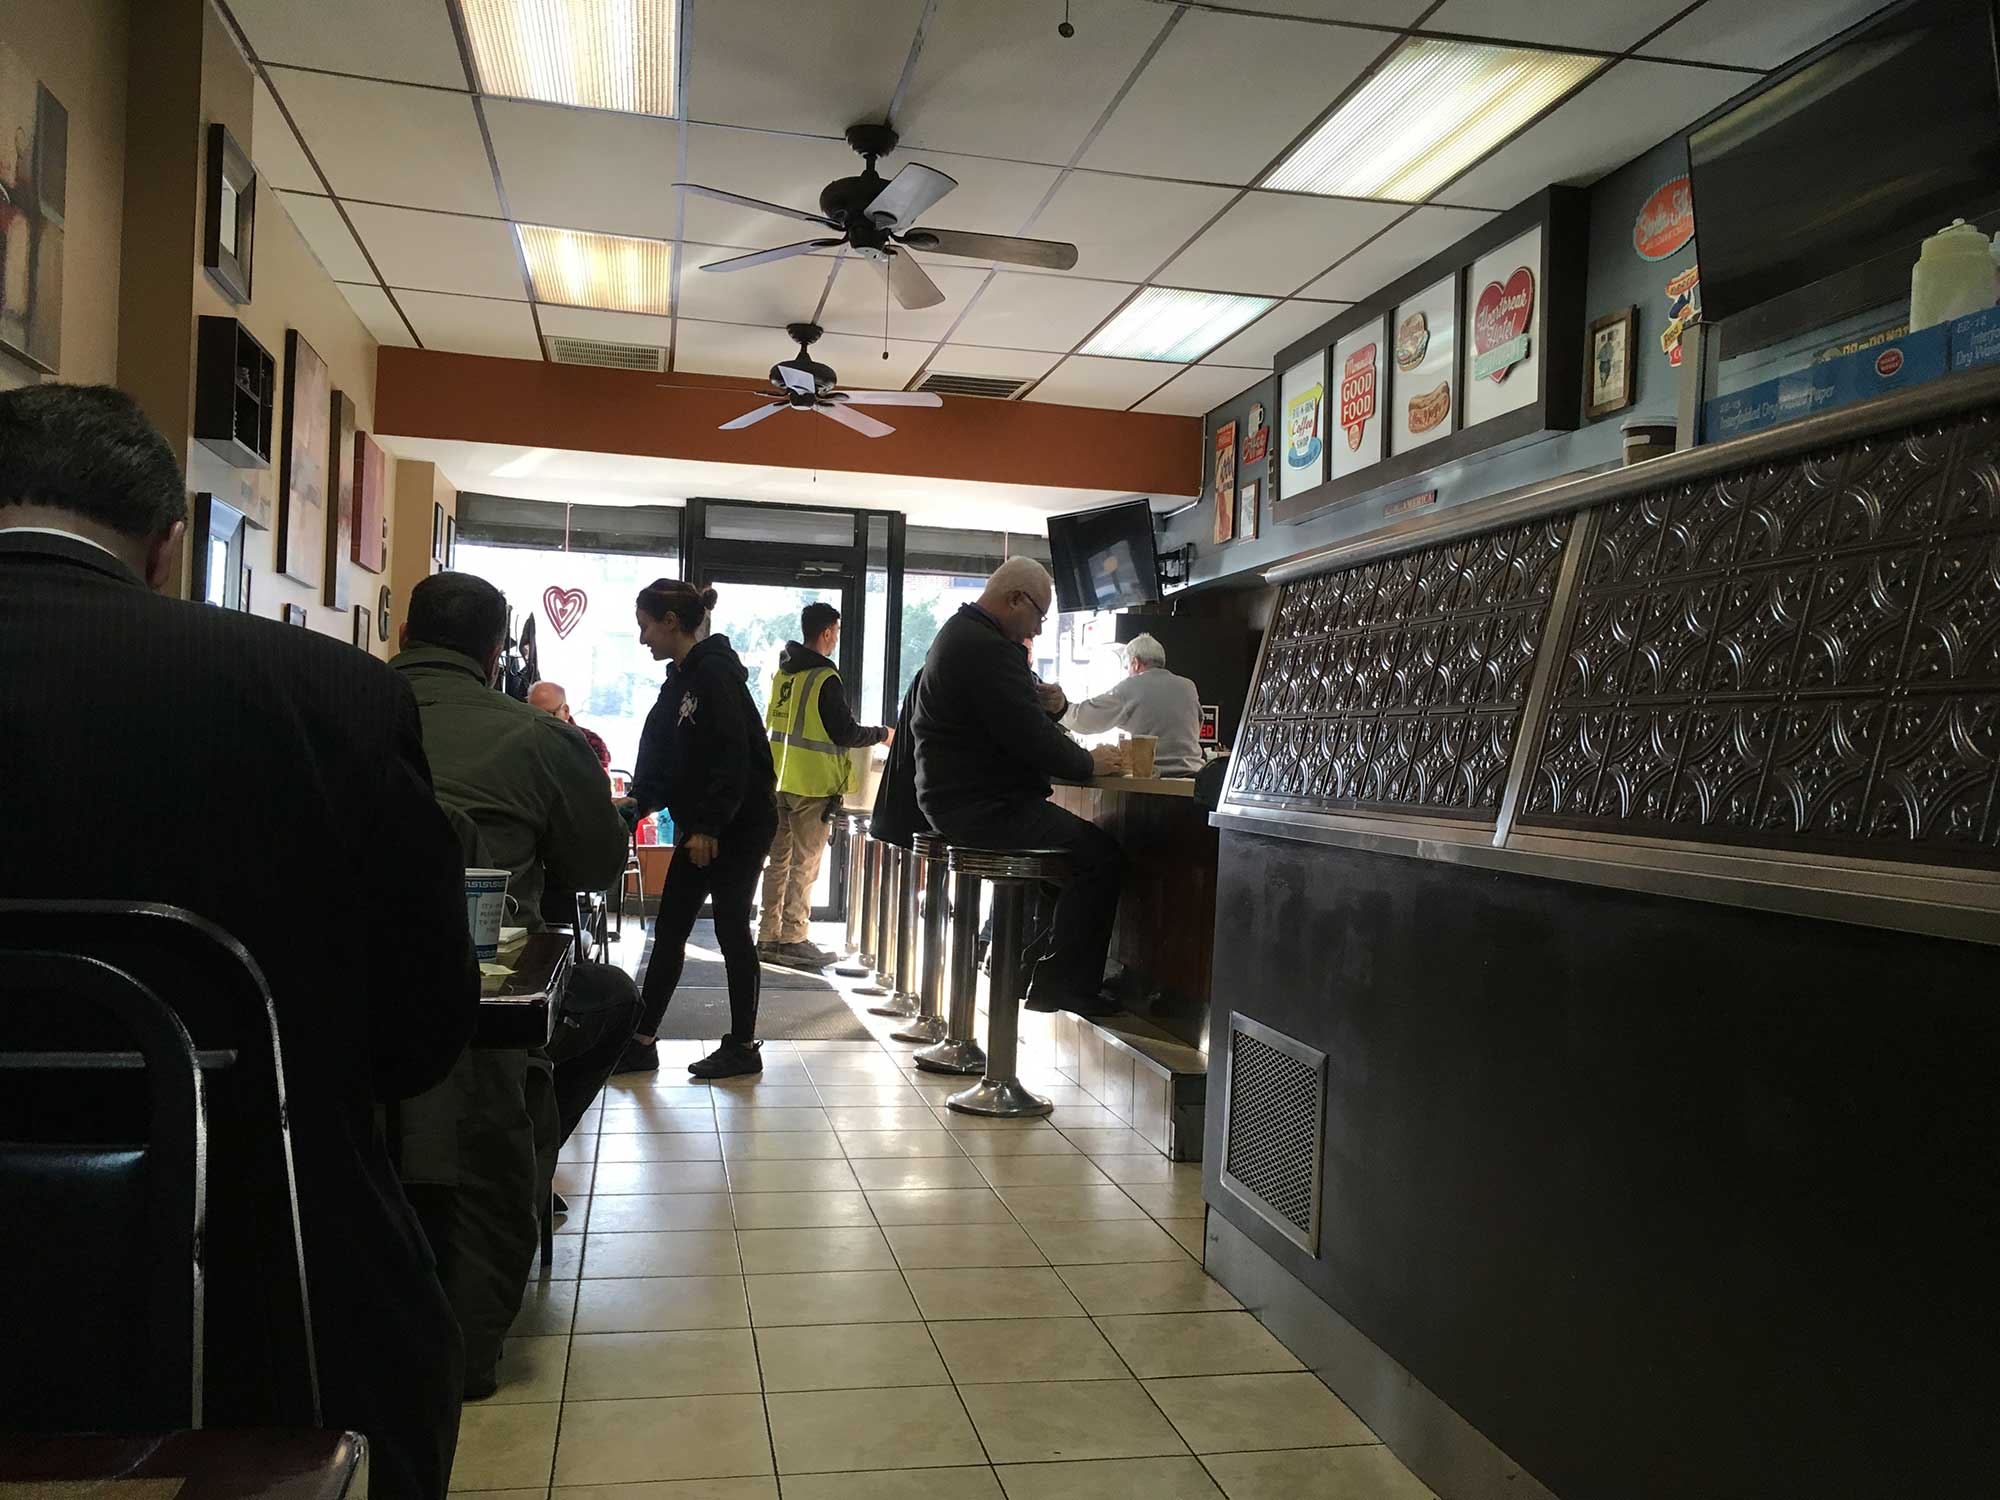 Gavel Grill on Hayes St., St. George, Staten Island